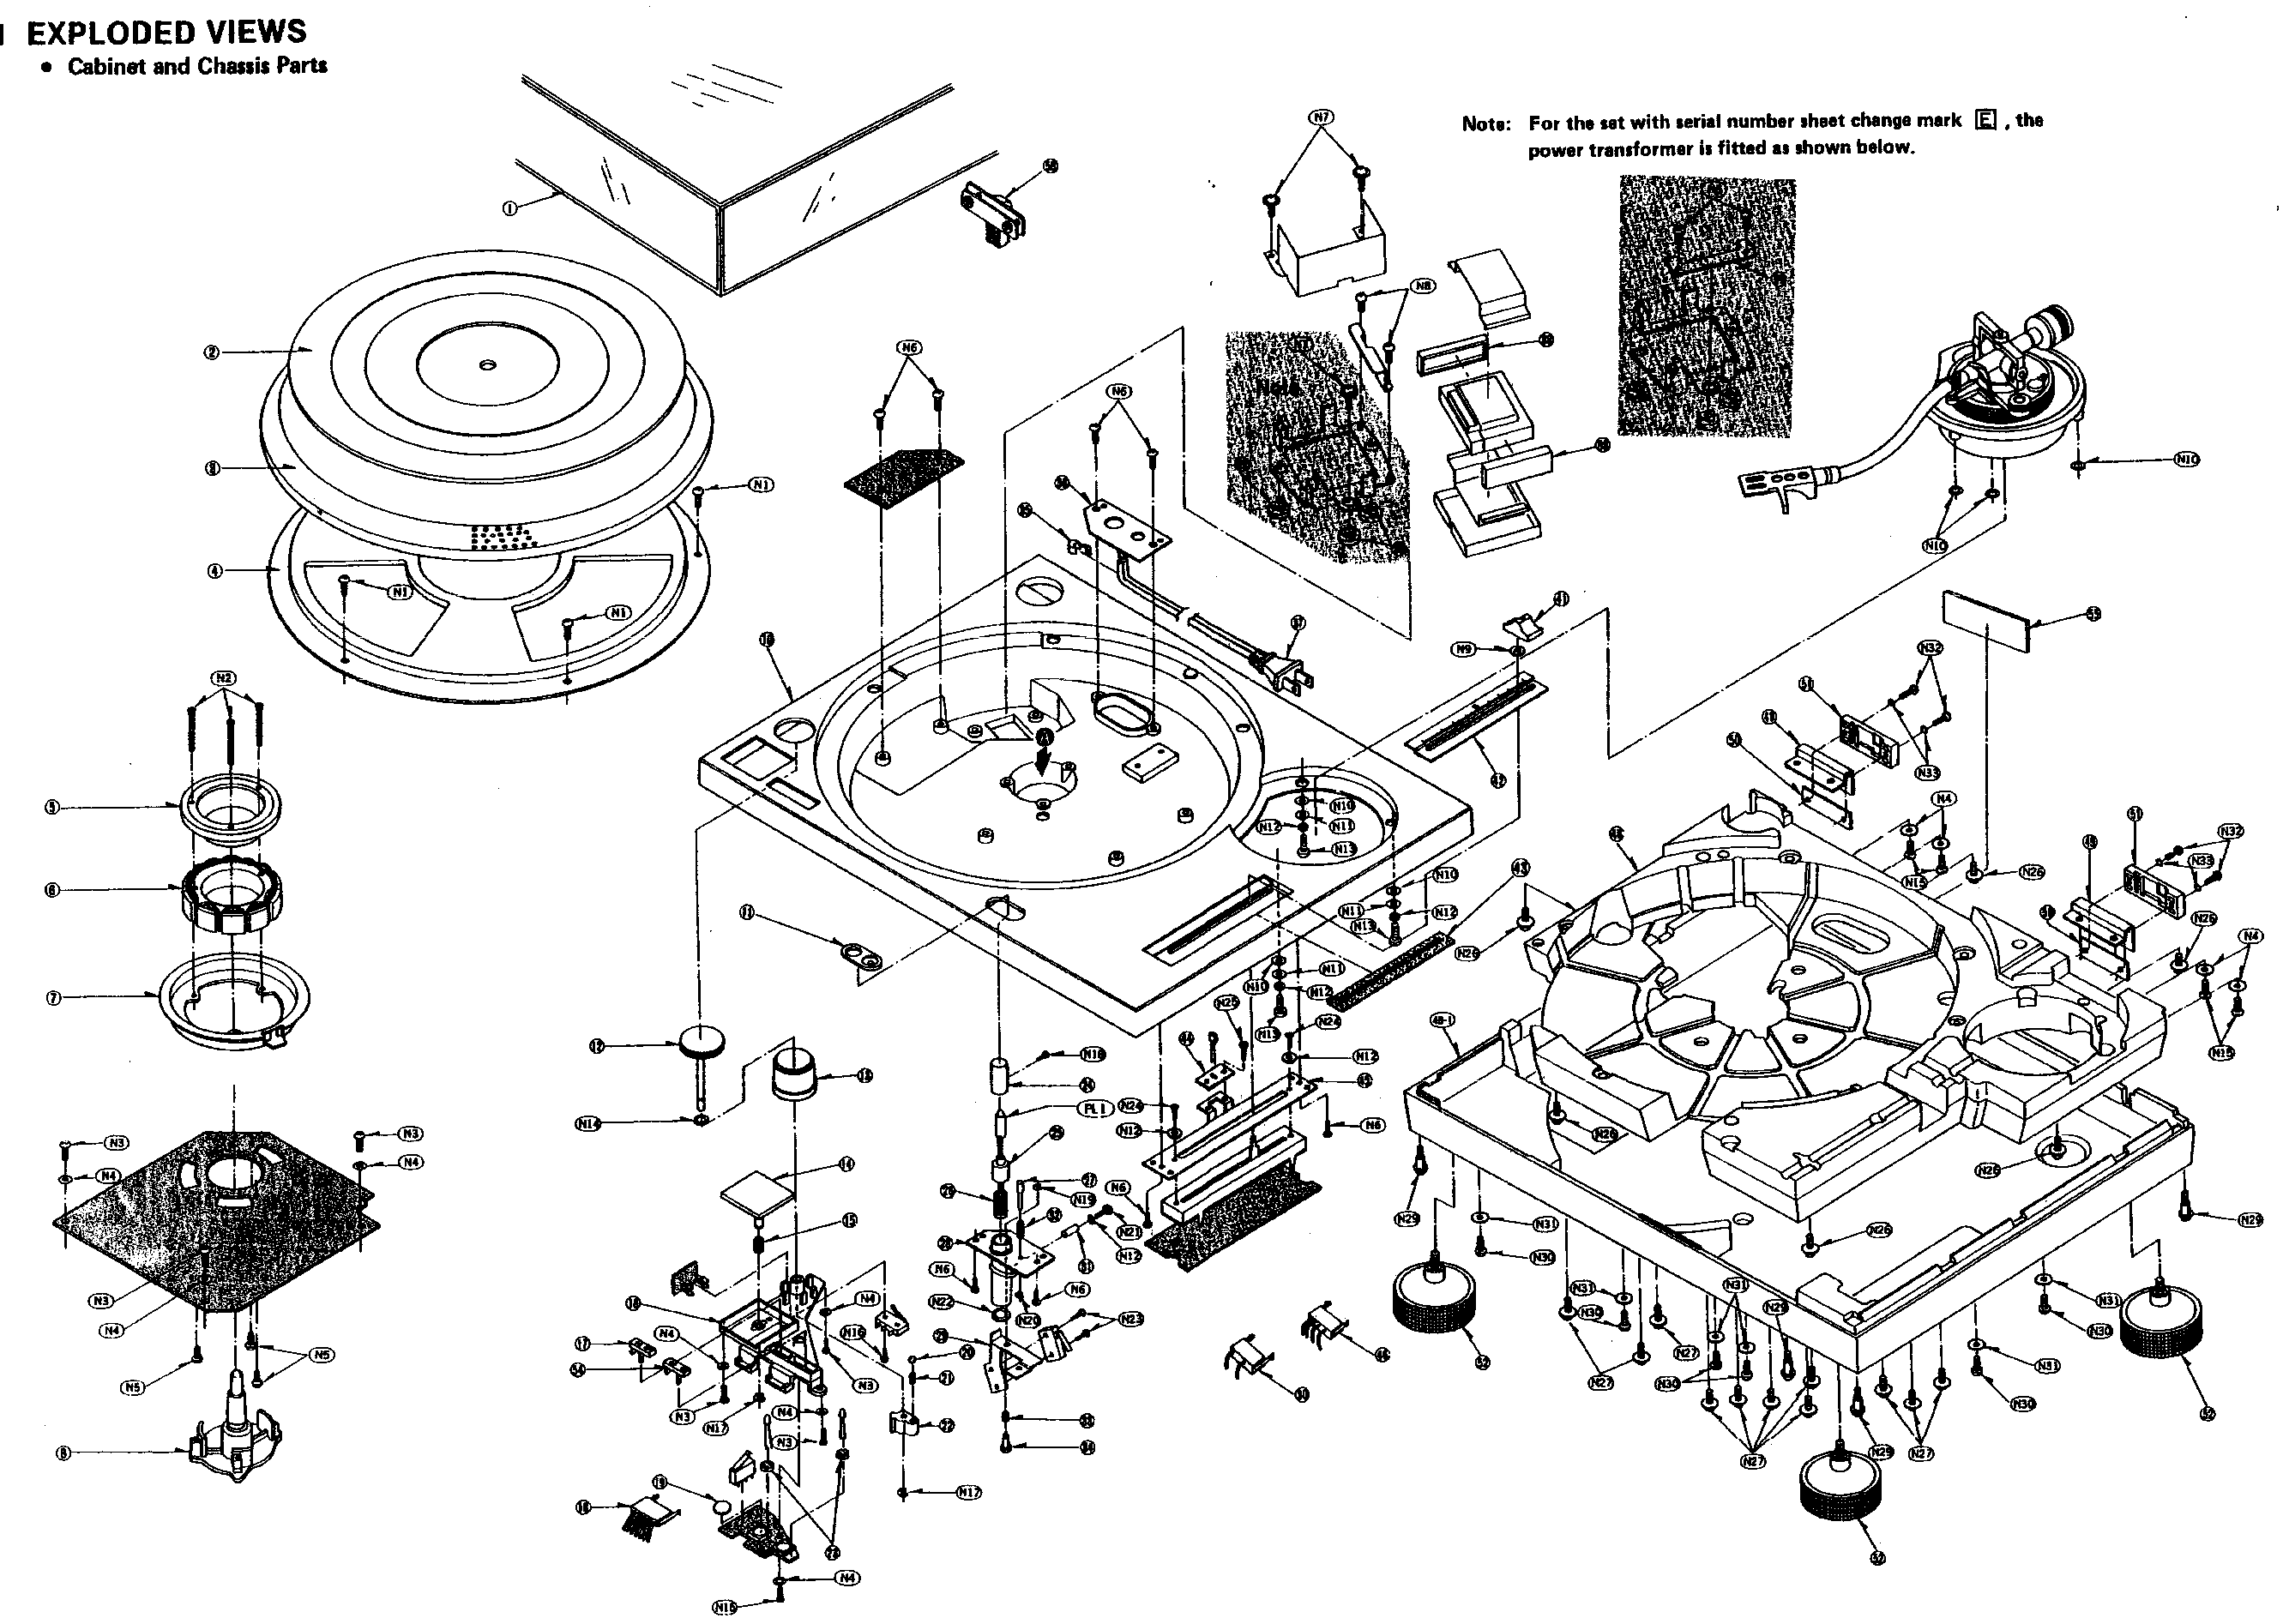 IT\'S NOT THAT COMPLICATED. Exploded view of a Technics Turntable ...